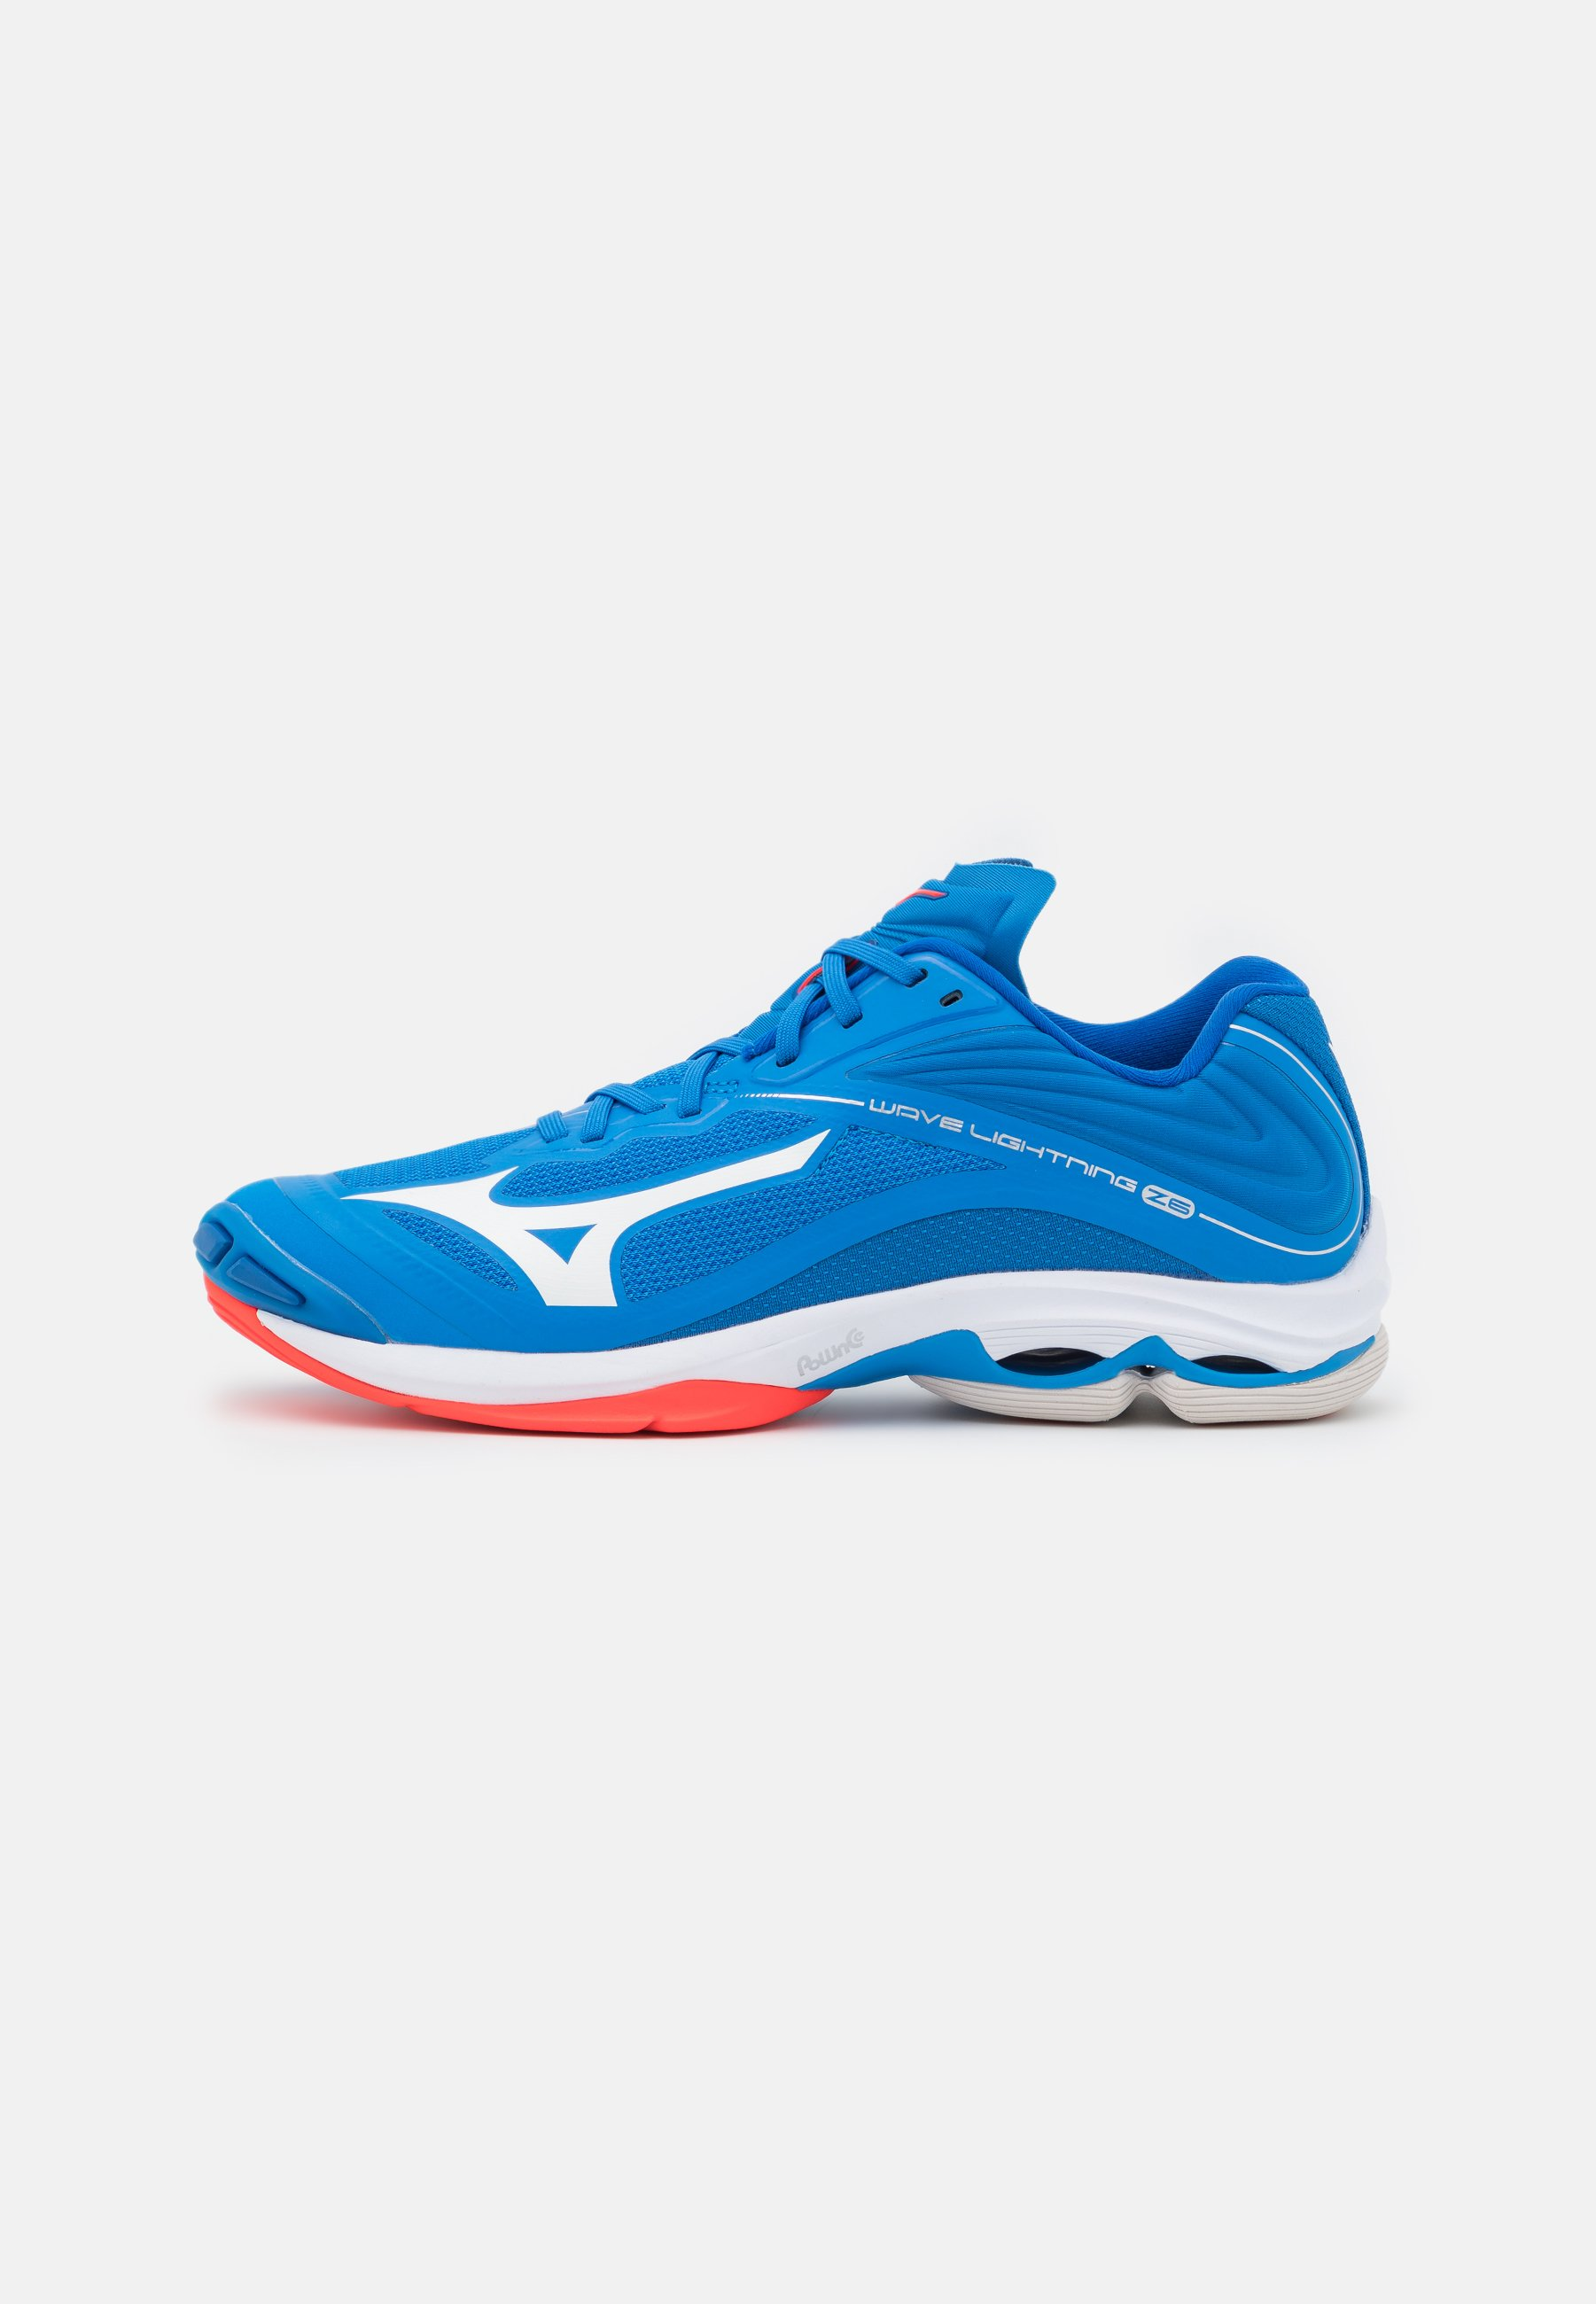 Men WAVE LIGHTNING Z6 - Volleyball shoes